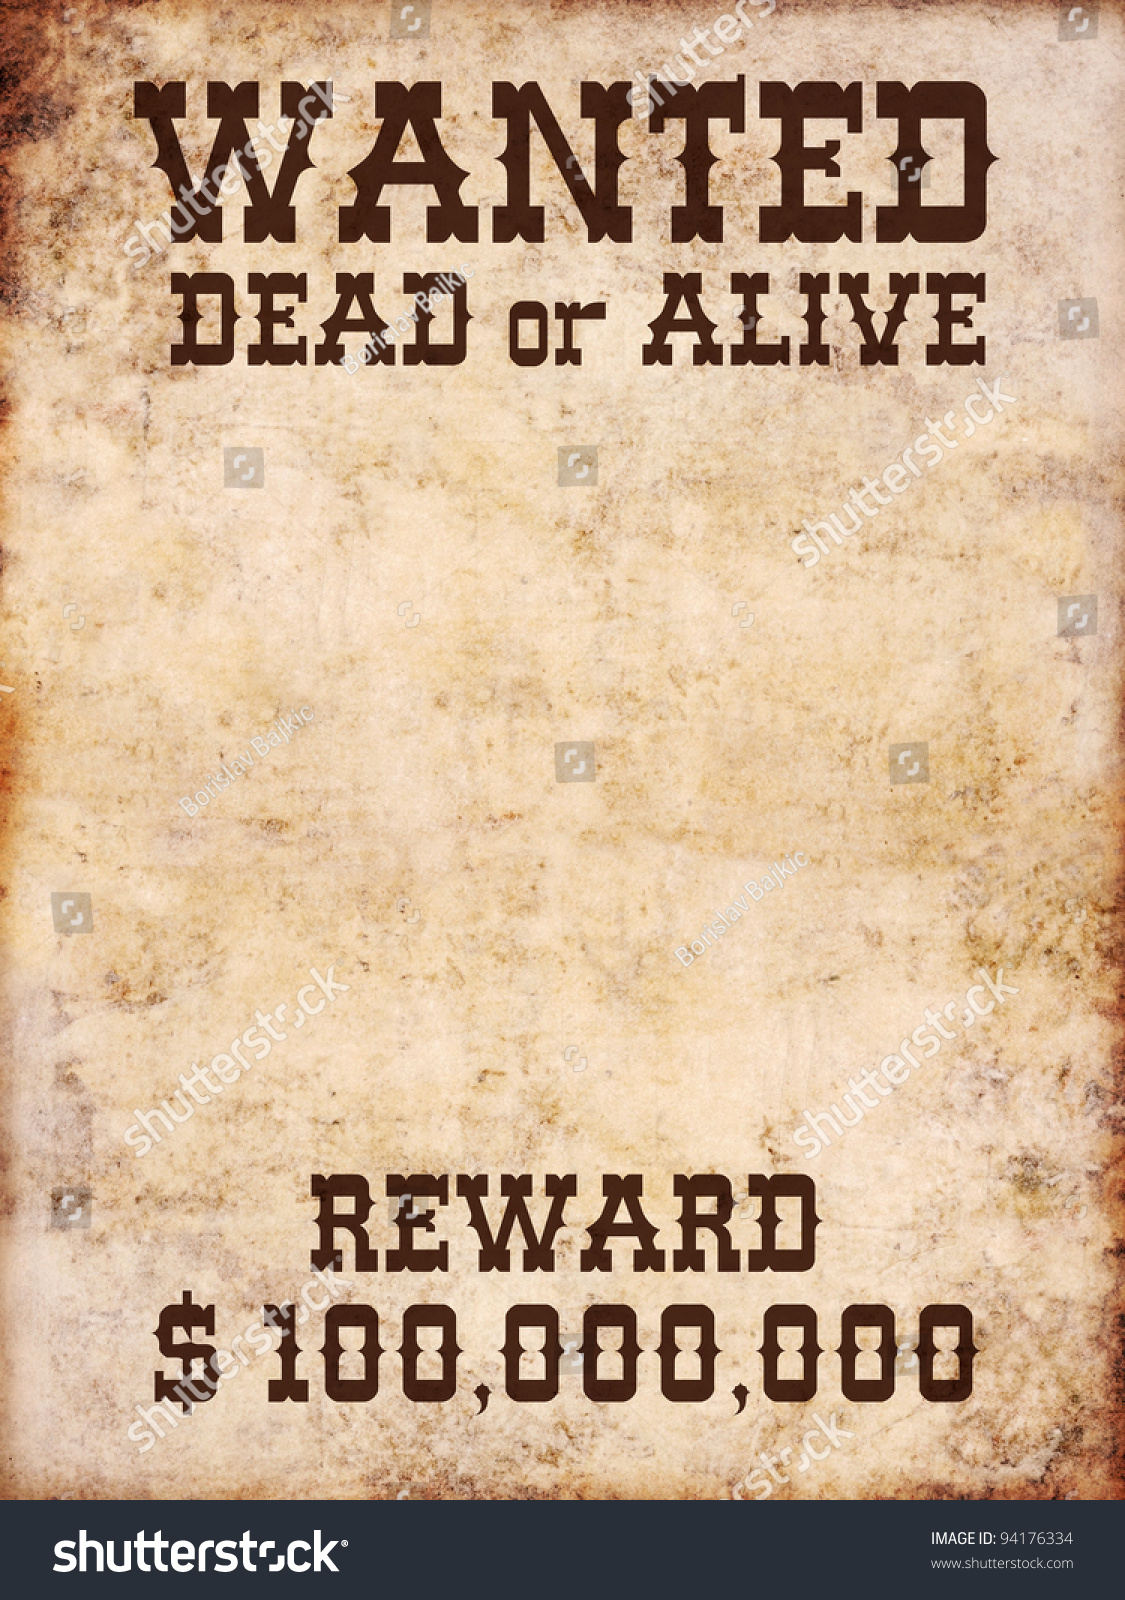 Wanted Poster Dead Alive Stock Illustration 94176334 Shutterstock